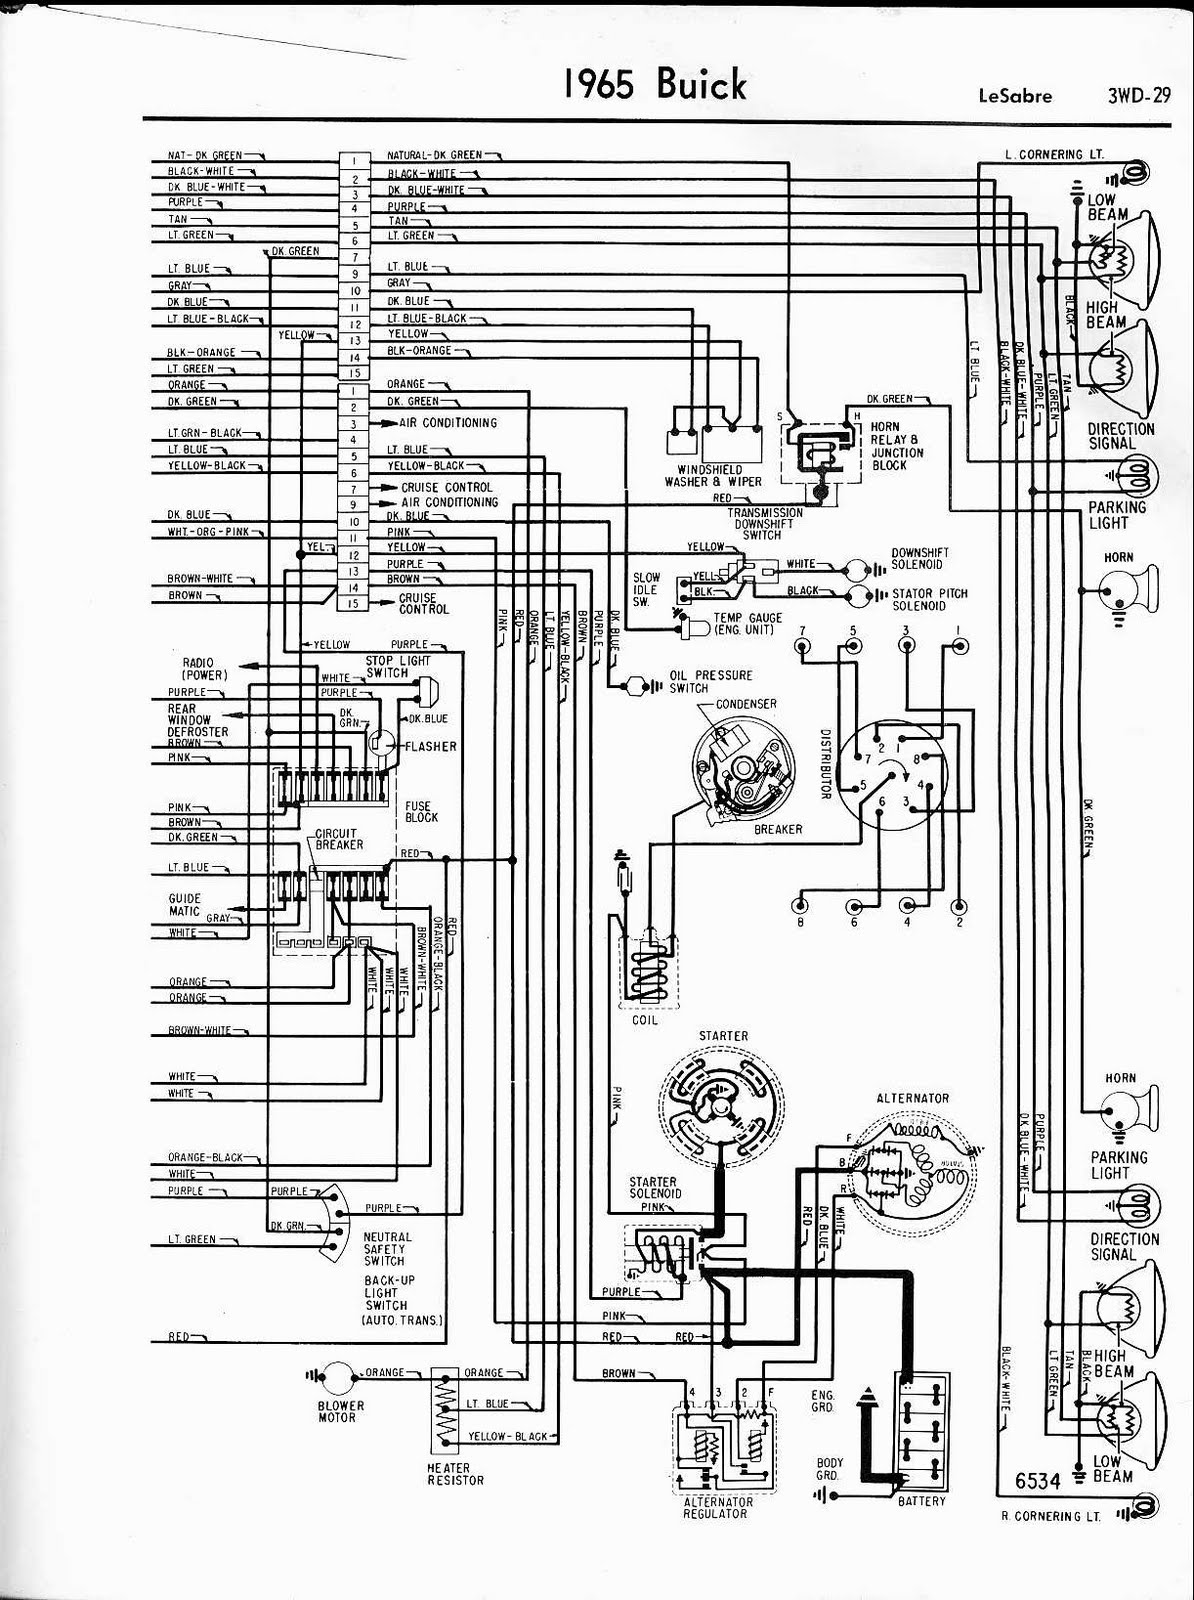 Oldsmobile Cutlas Wiring Diagram